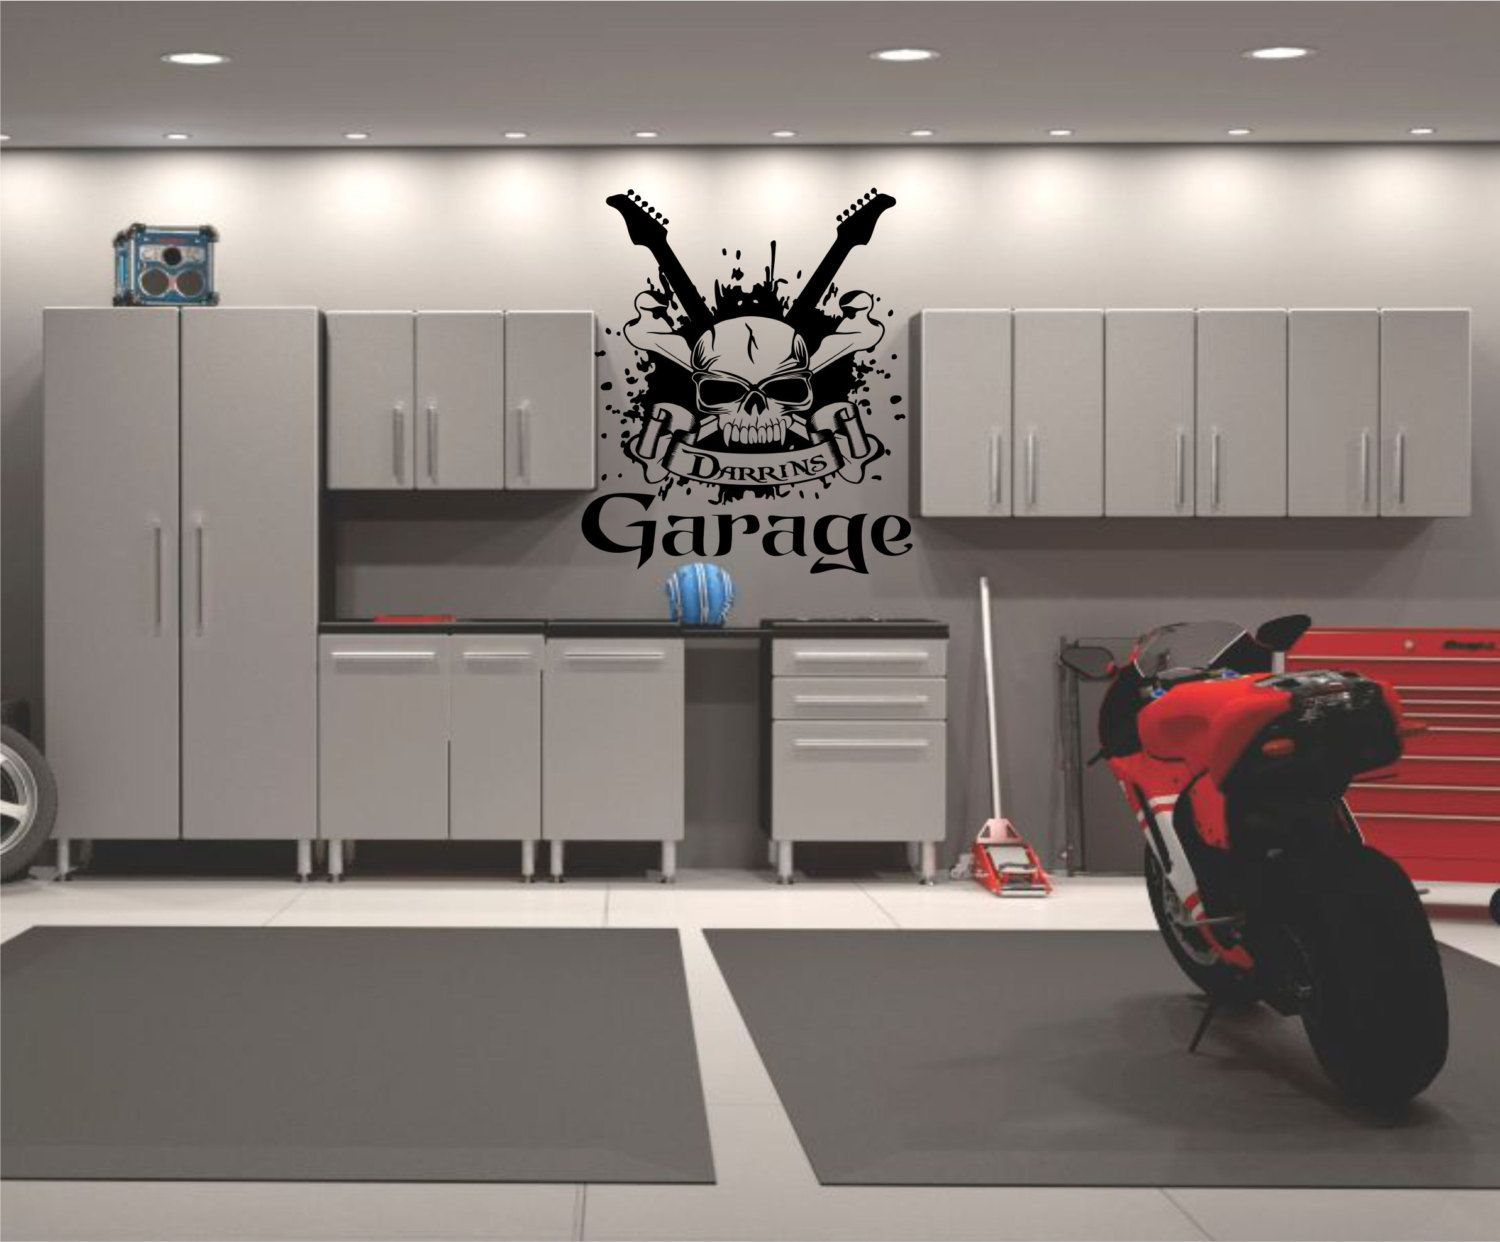 Garage Wall Decal Personalized Garage Decal Garage Decor Garage - Custom vinyl wall decals for garage